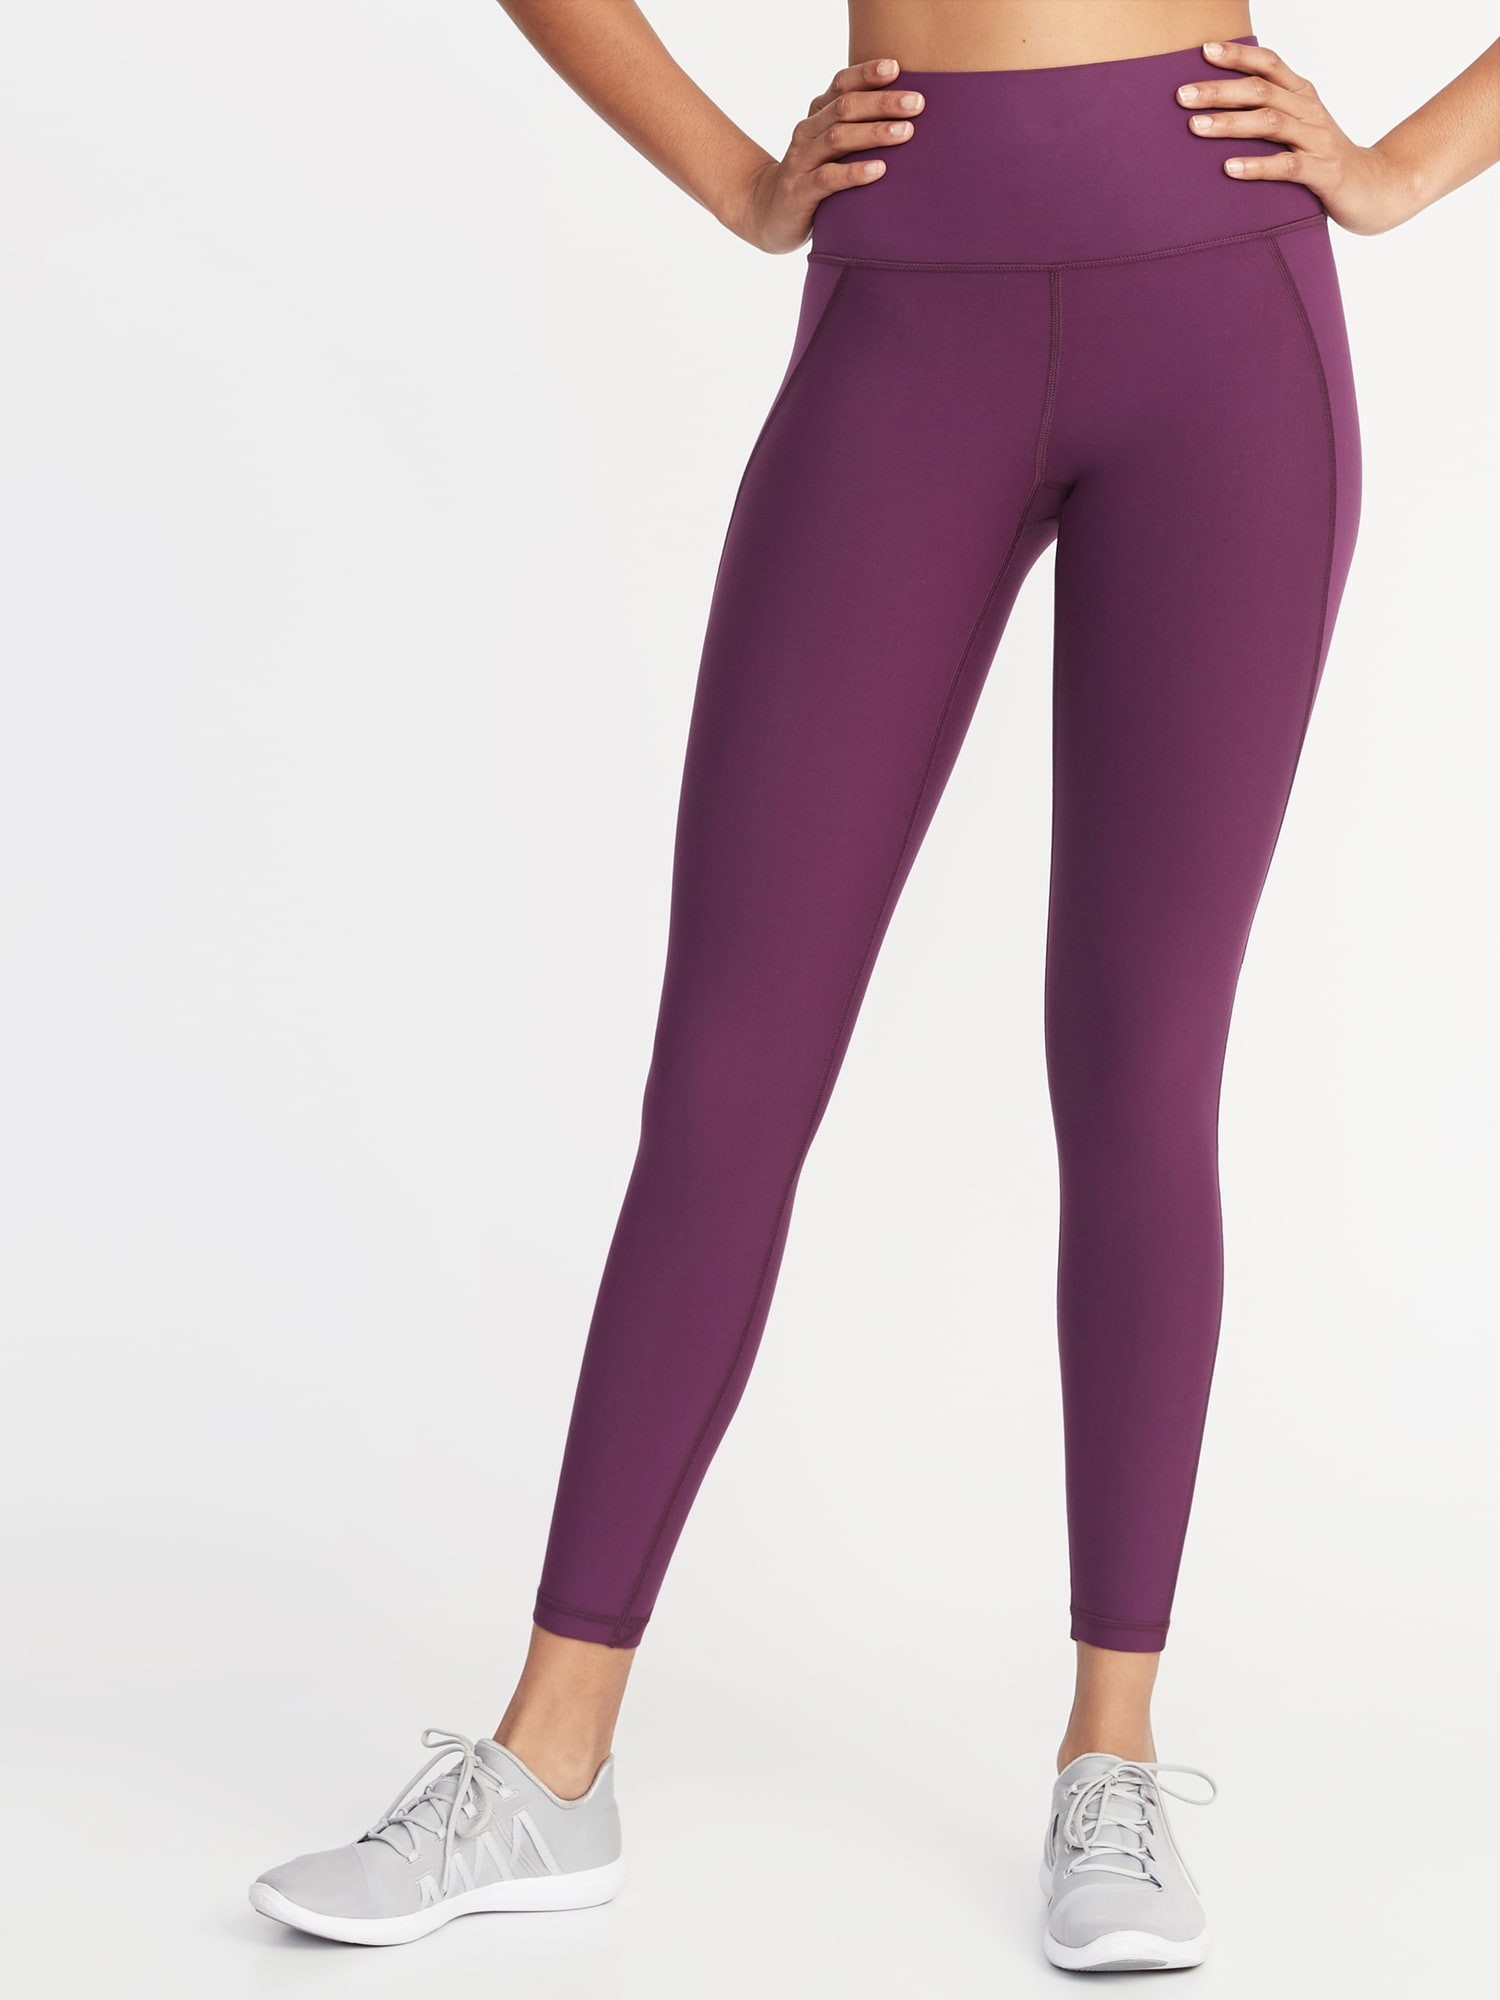 9d633c28aa2027 High-Rise Elevate Built-In Sculpt 7/8-Length Compression Leggings for Women